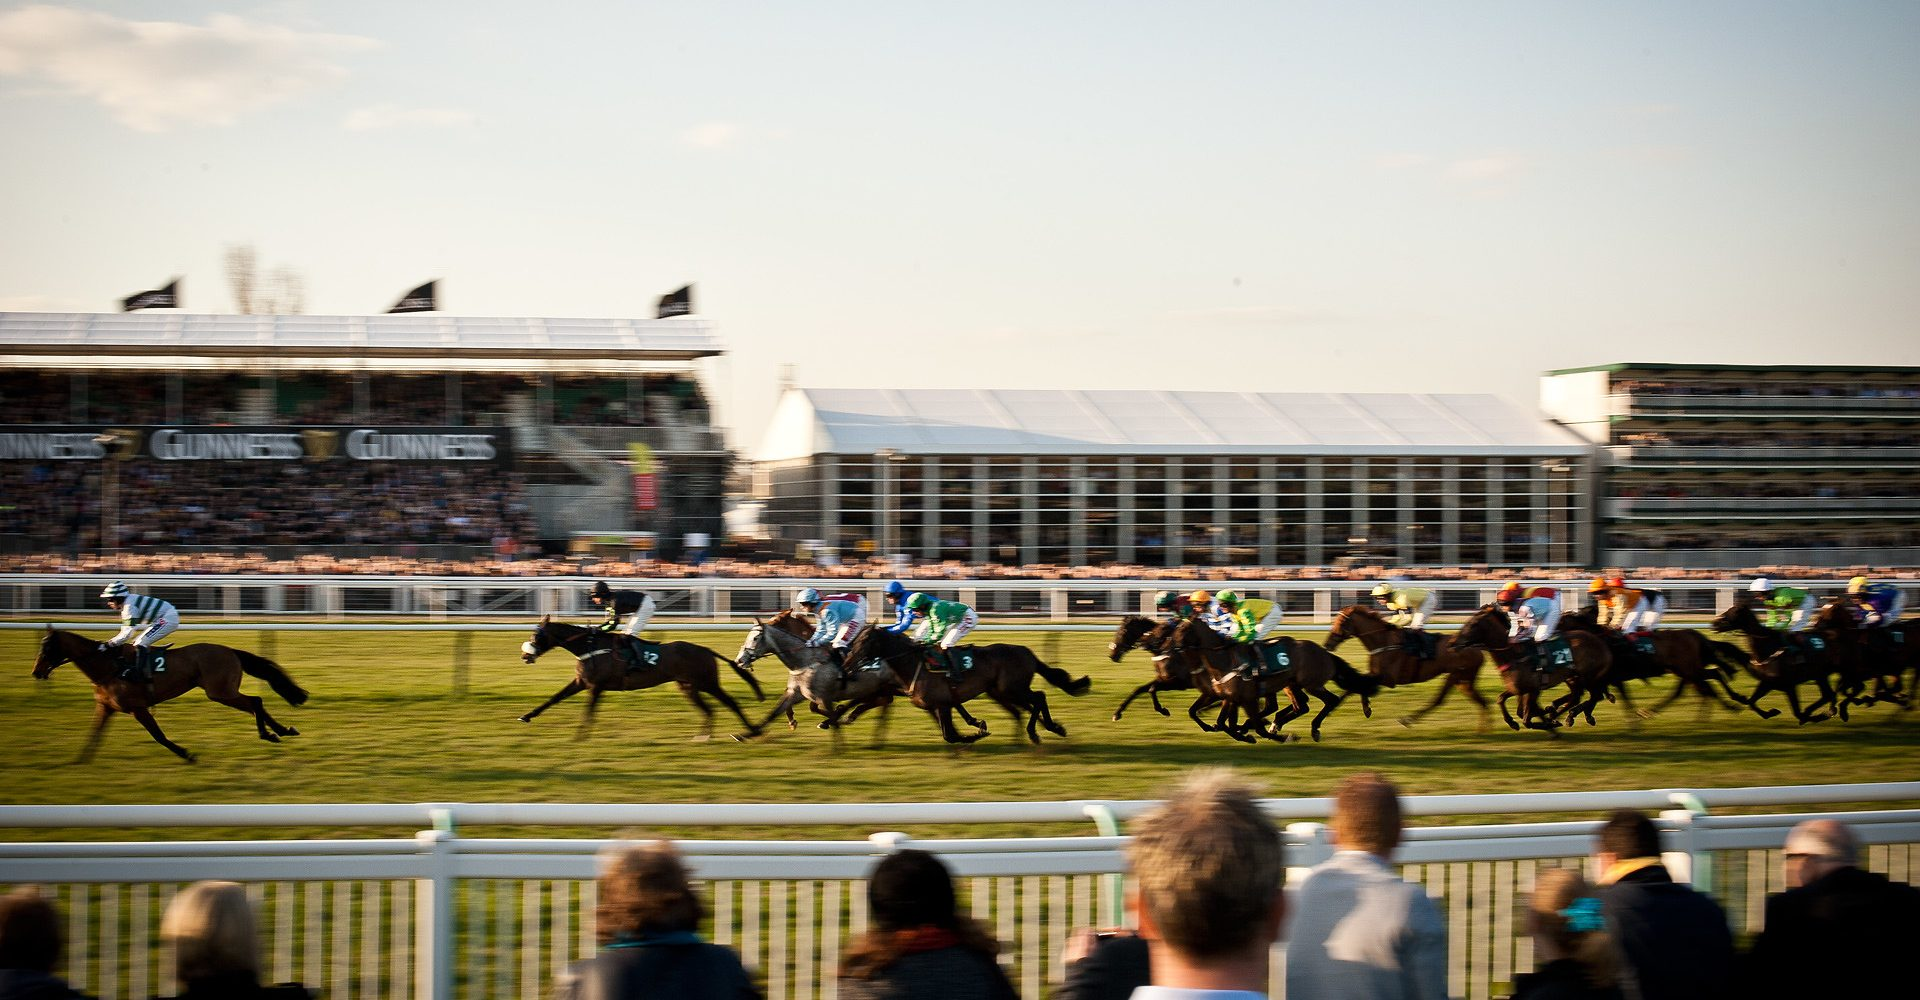 Horse race with crowds around the track and in stands